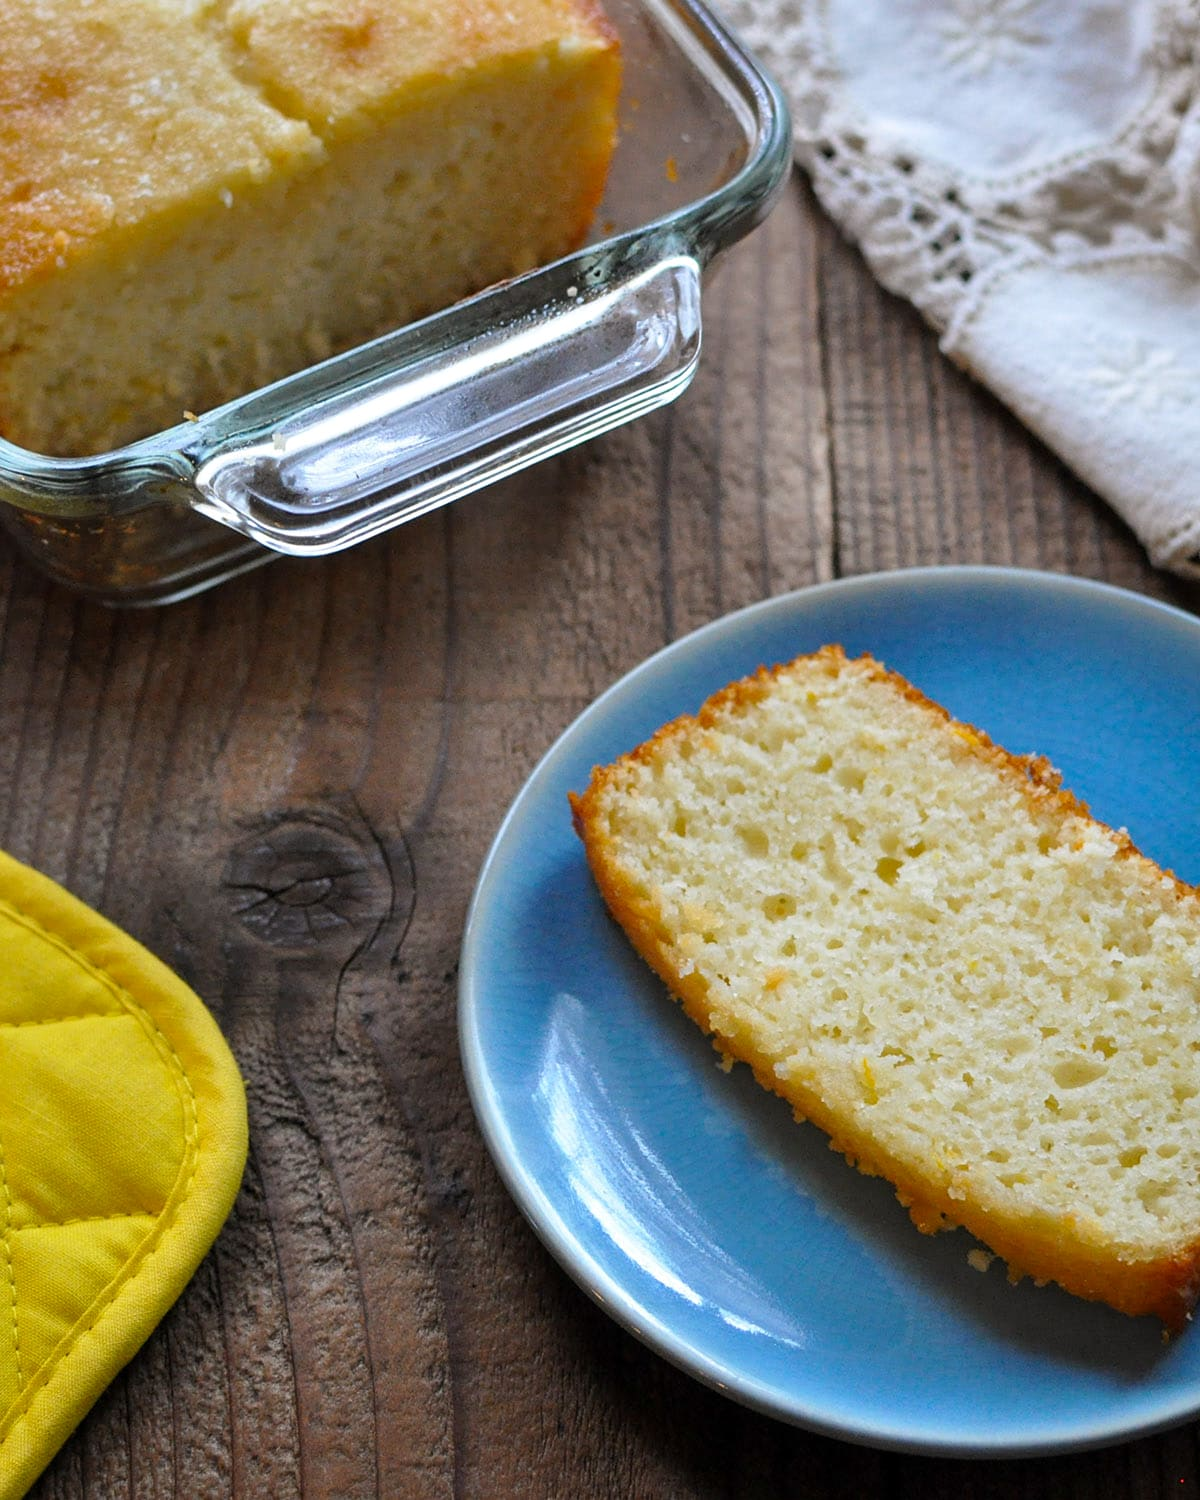 a slice of lemon bread on a blue plate next to a yellow hot pad